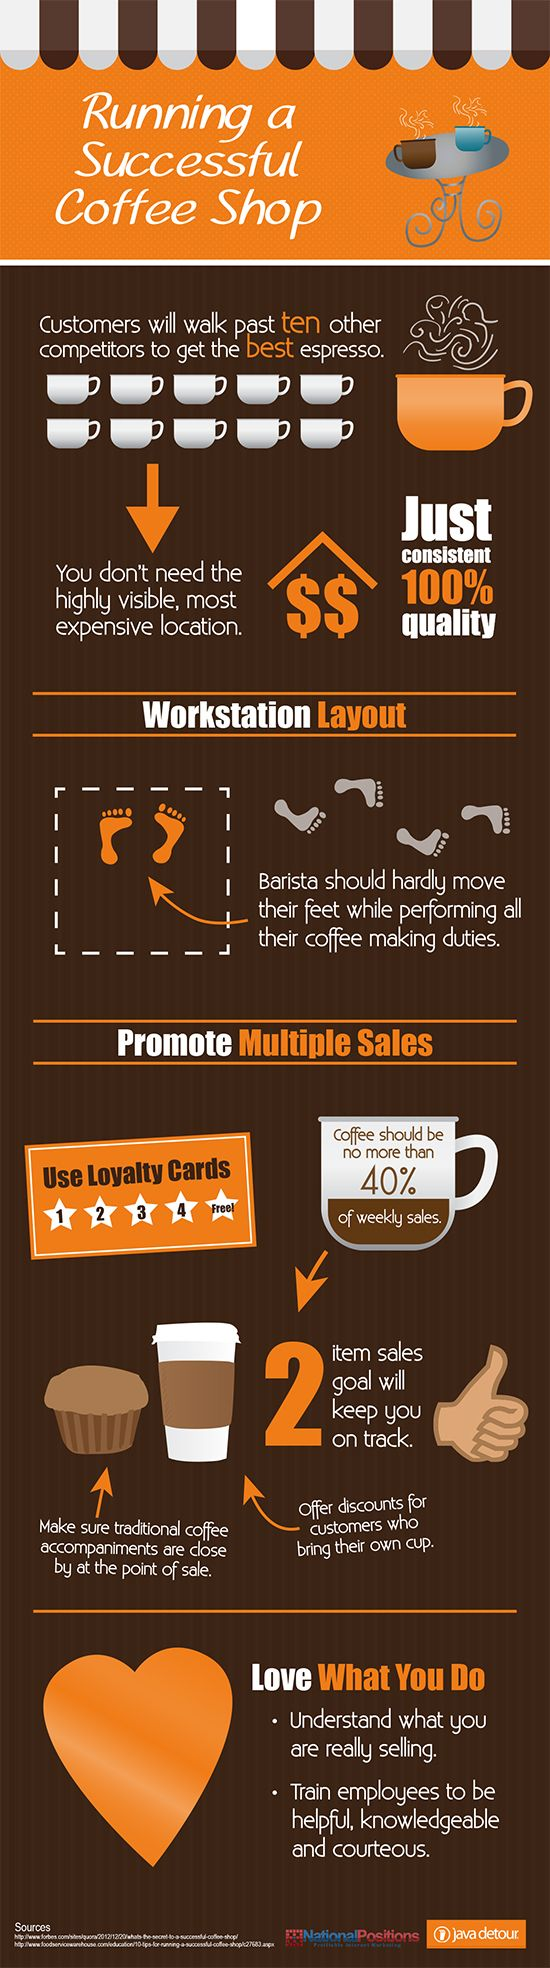 Best 25 Mobile Coffee Shop Ideas On Pinterest Mobile Food Cart